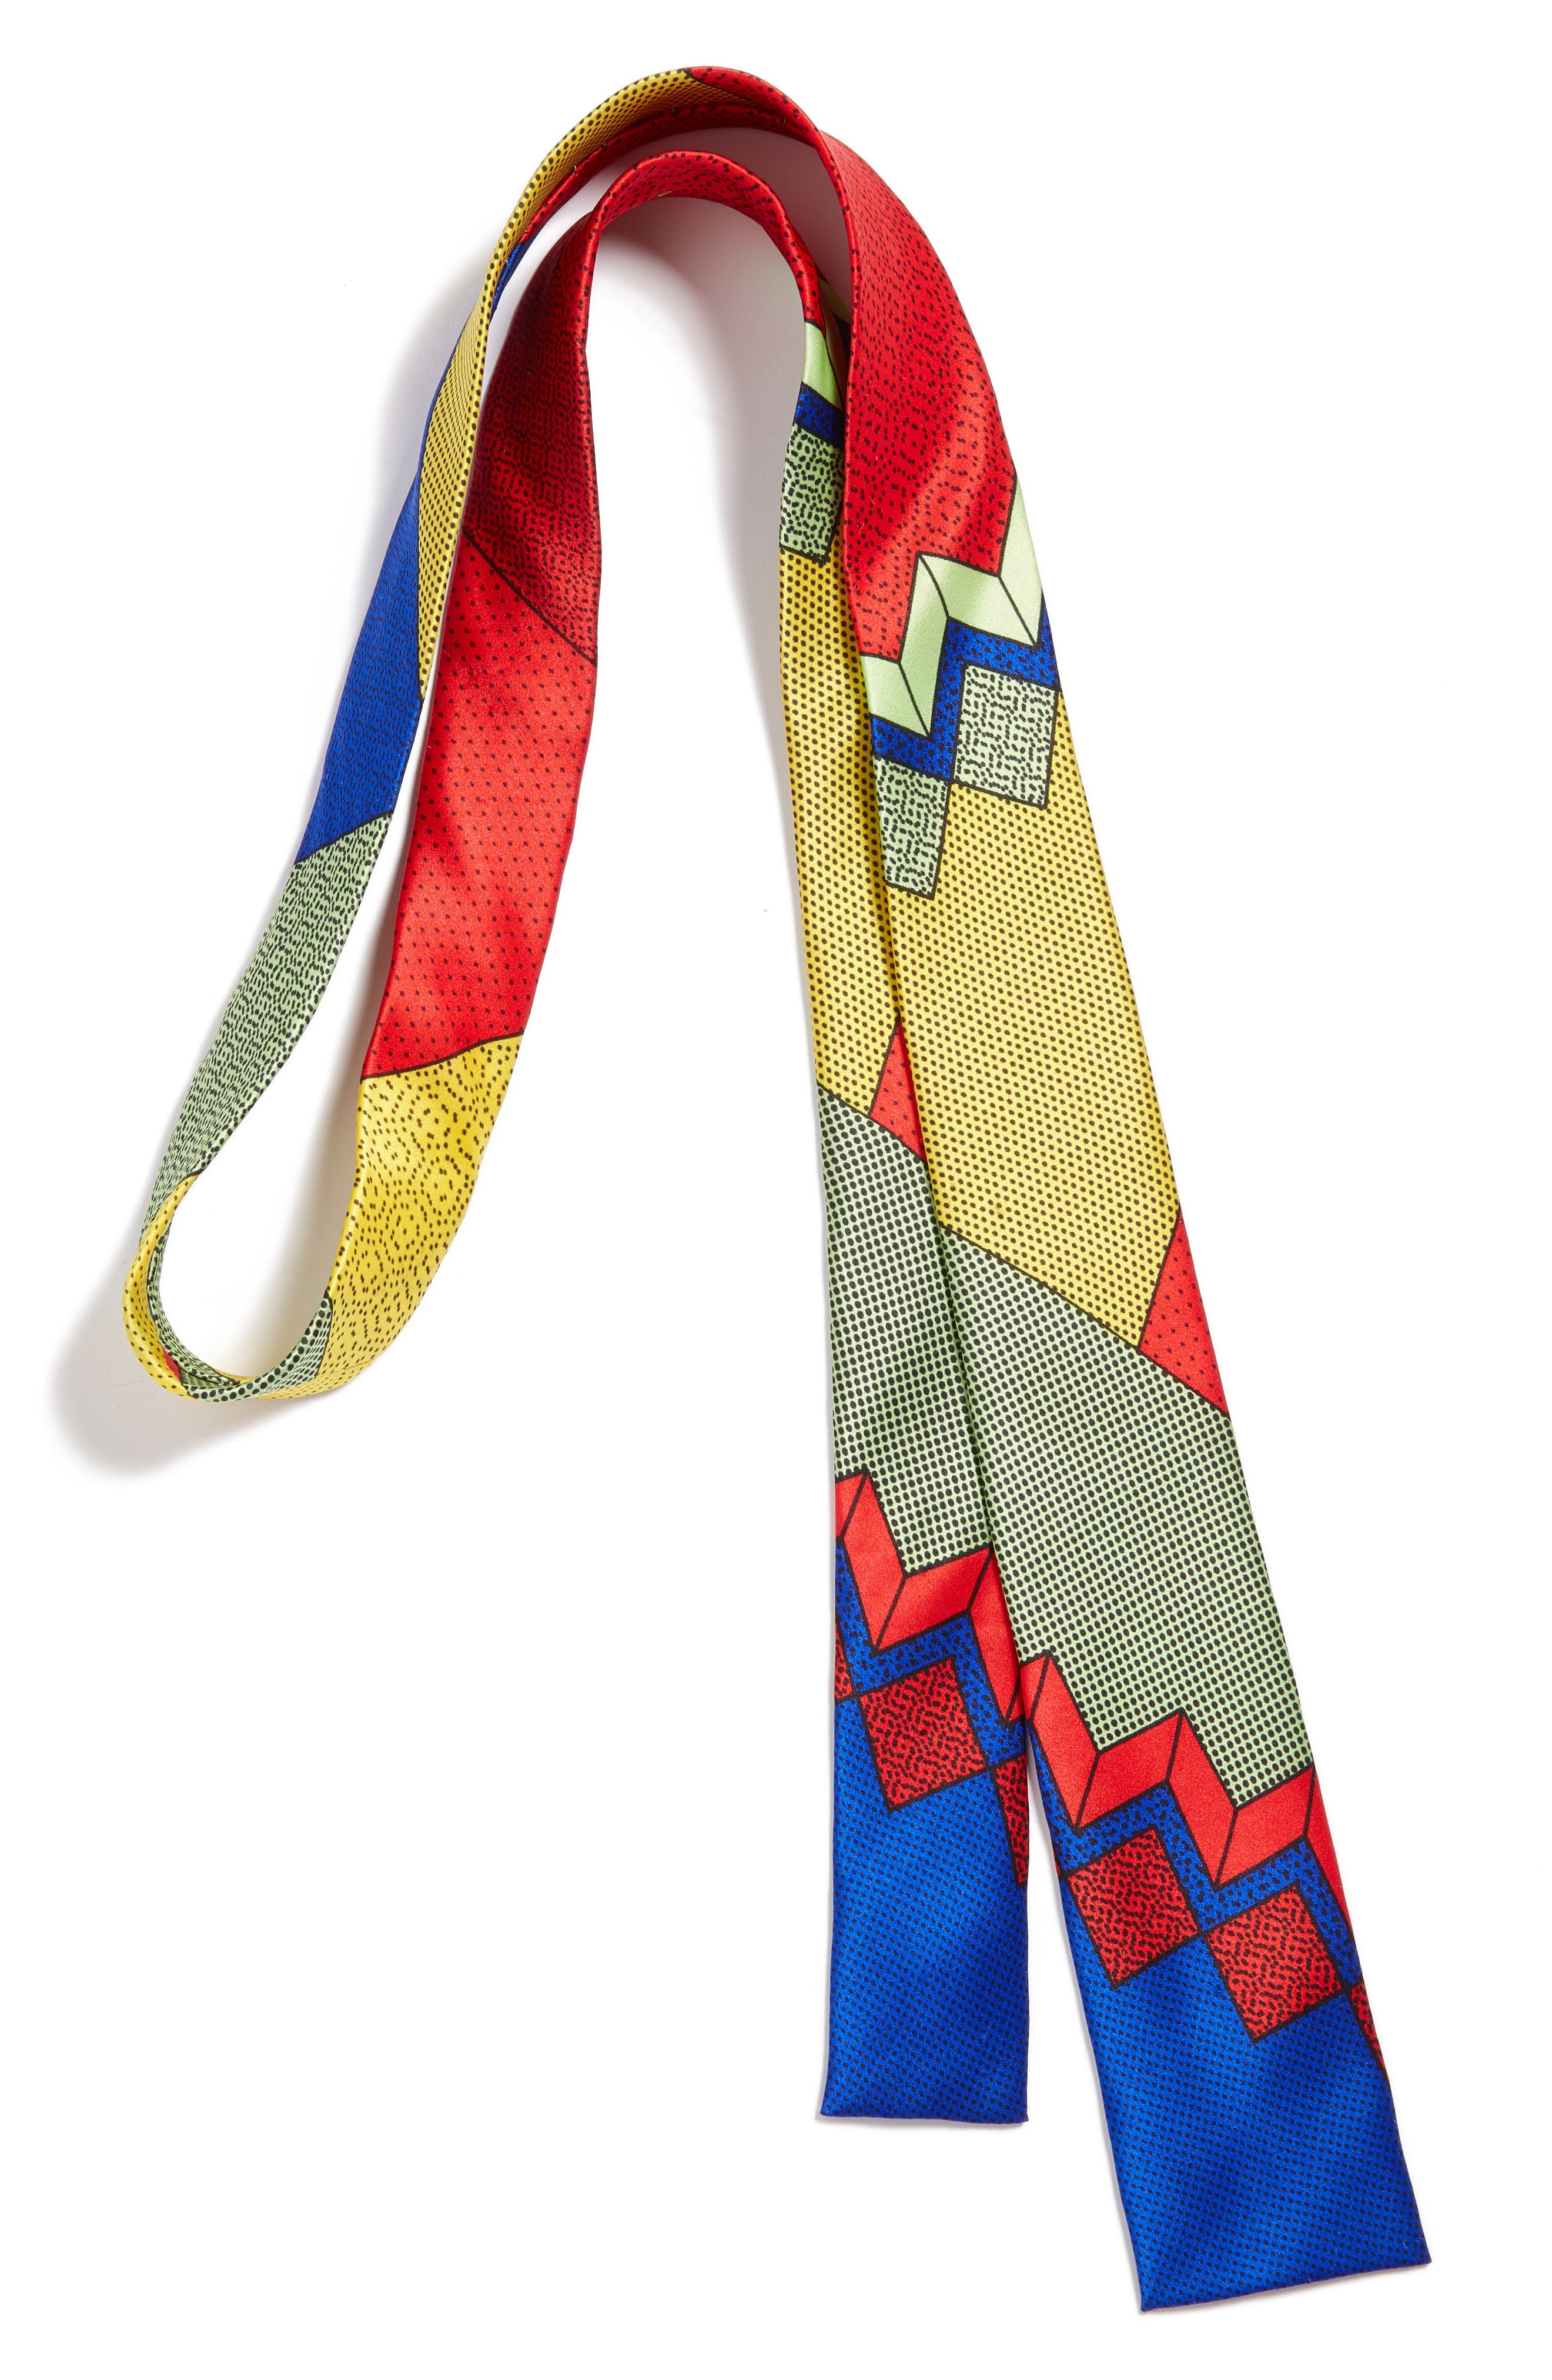 MEMPHIS Milano Red/Blue Print Silk Tie,                         Main,                         color, RED/ BLUE